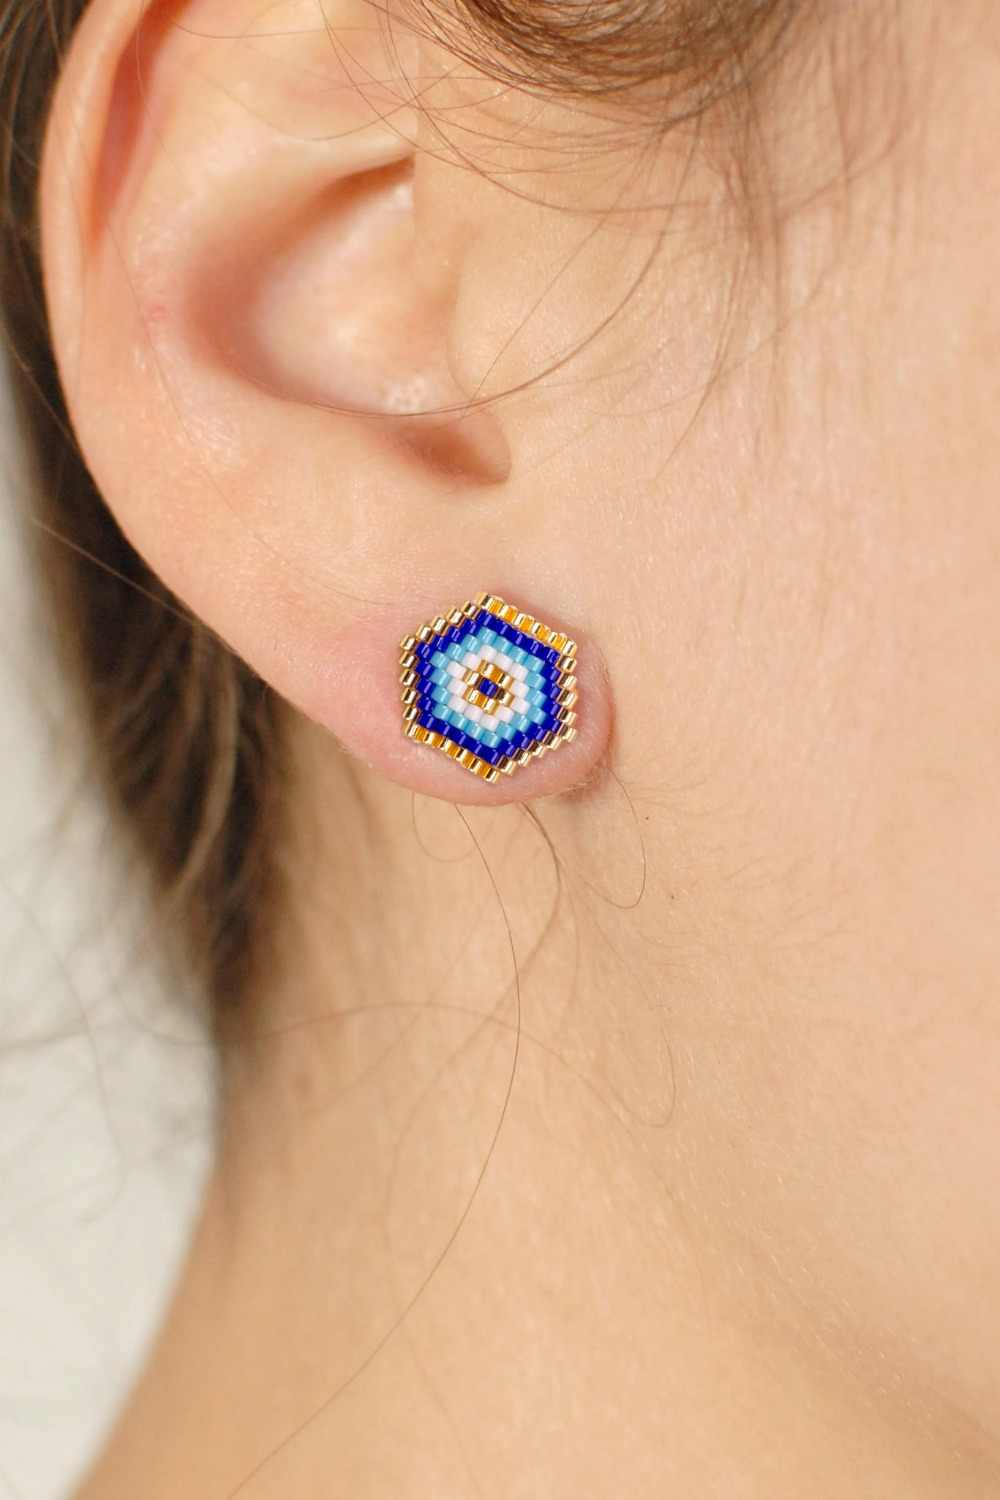 Go2boho Evil Eye Stud Earrings MIYUKI Delica Earring For Women Insta Fashion Turkish Evil Eye Handmade Jewels Gift Dropshipping